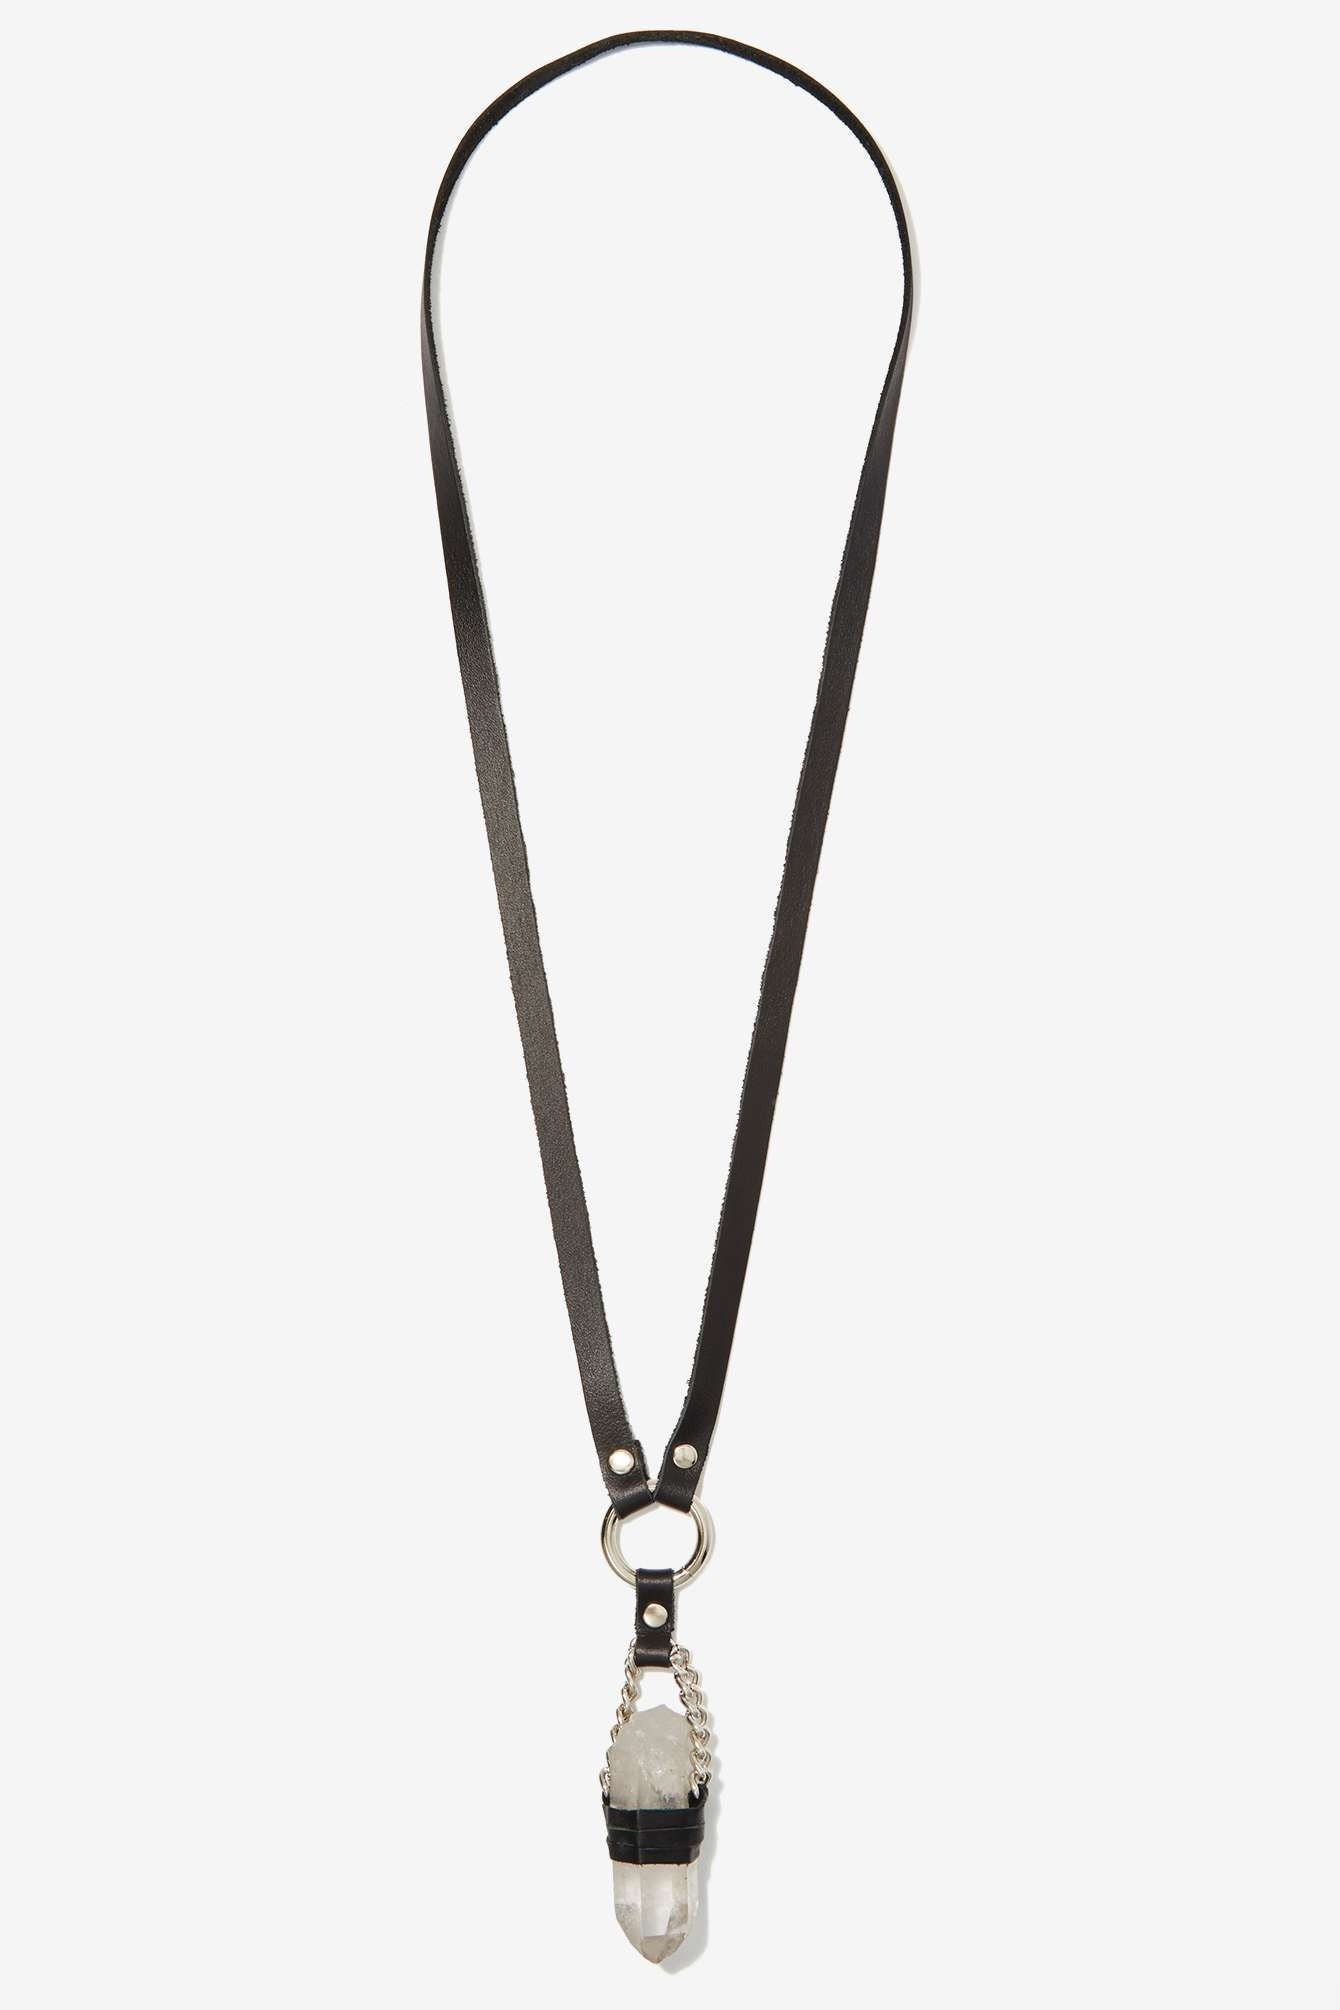 Chain Game Deity Necklace - JAKIMAC  - 1